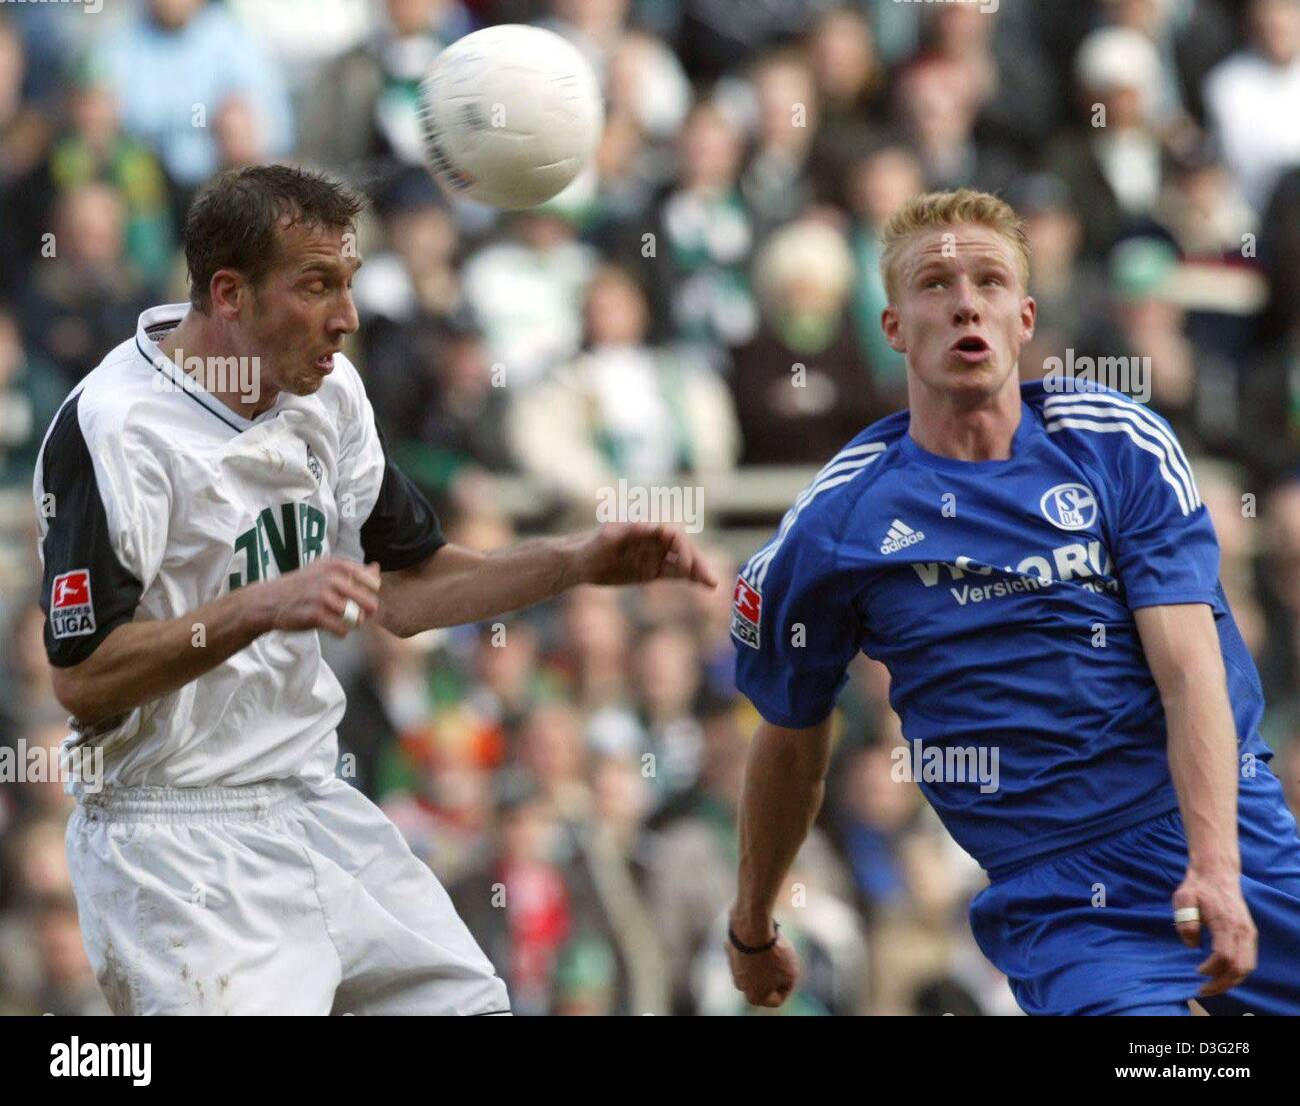 (dpa) -Moenchengladbach's Luxembourgian defender Jeff Strasser (L) struggles with Schalke's striker Mike - Stock Image